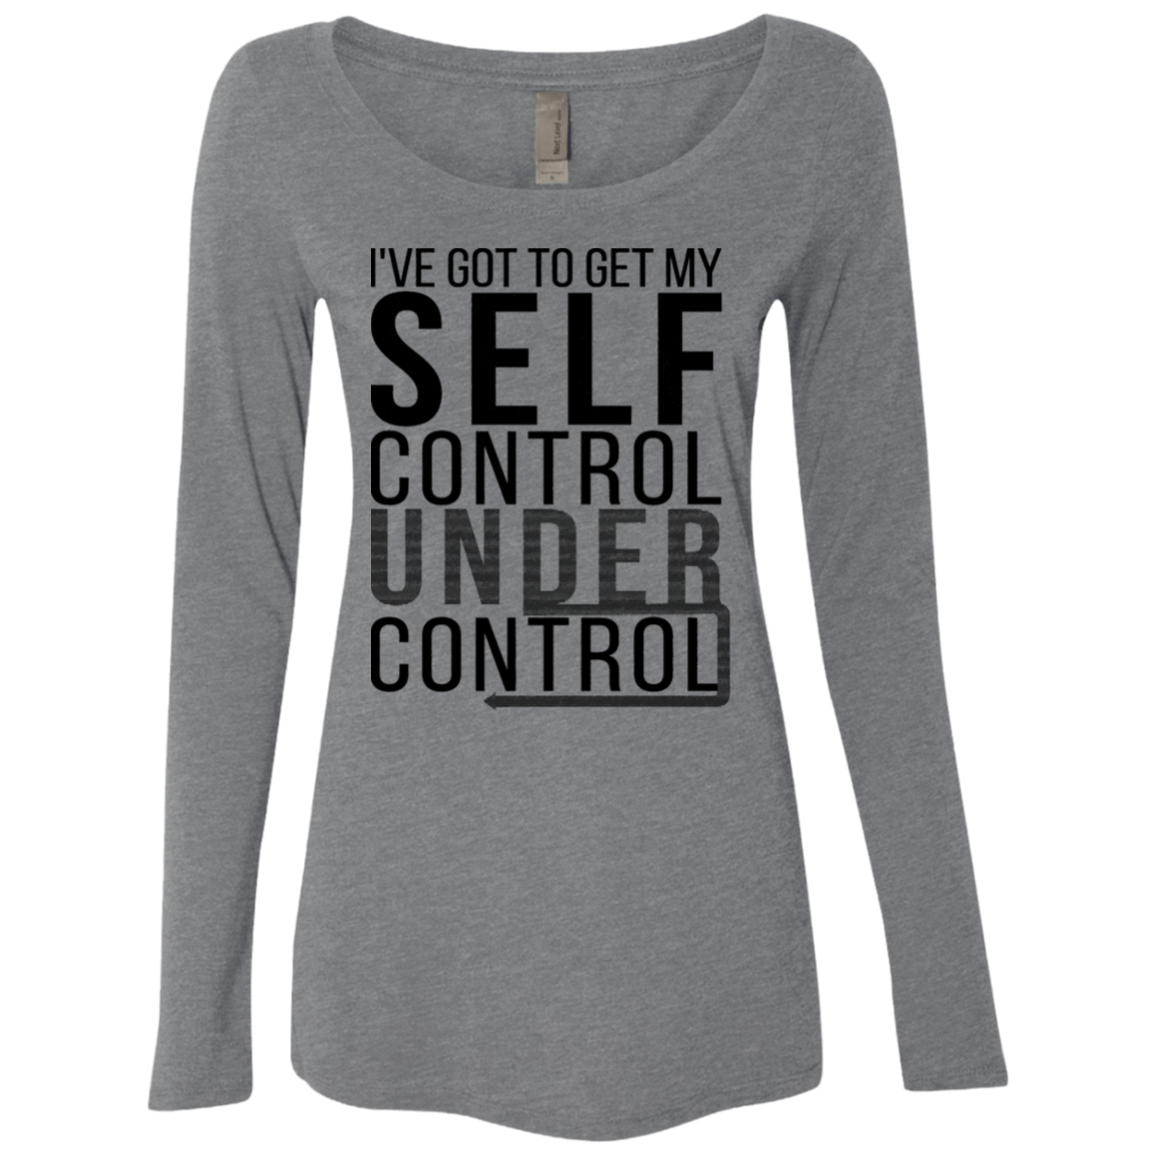 I've Got To Get My Self Control Under Control Women's Long Sleeve Tee